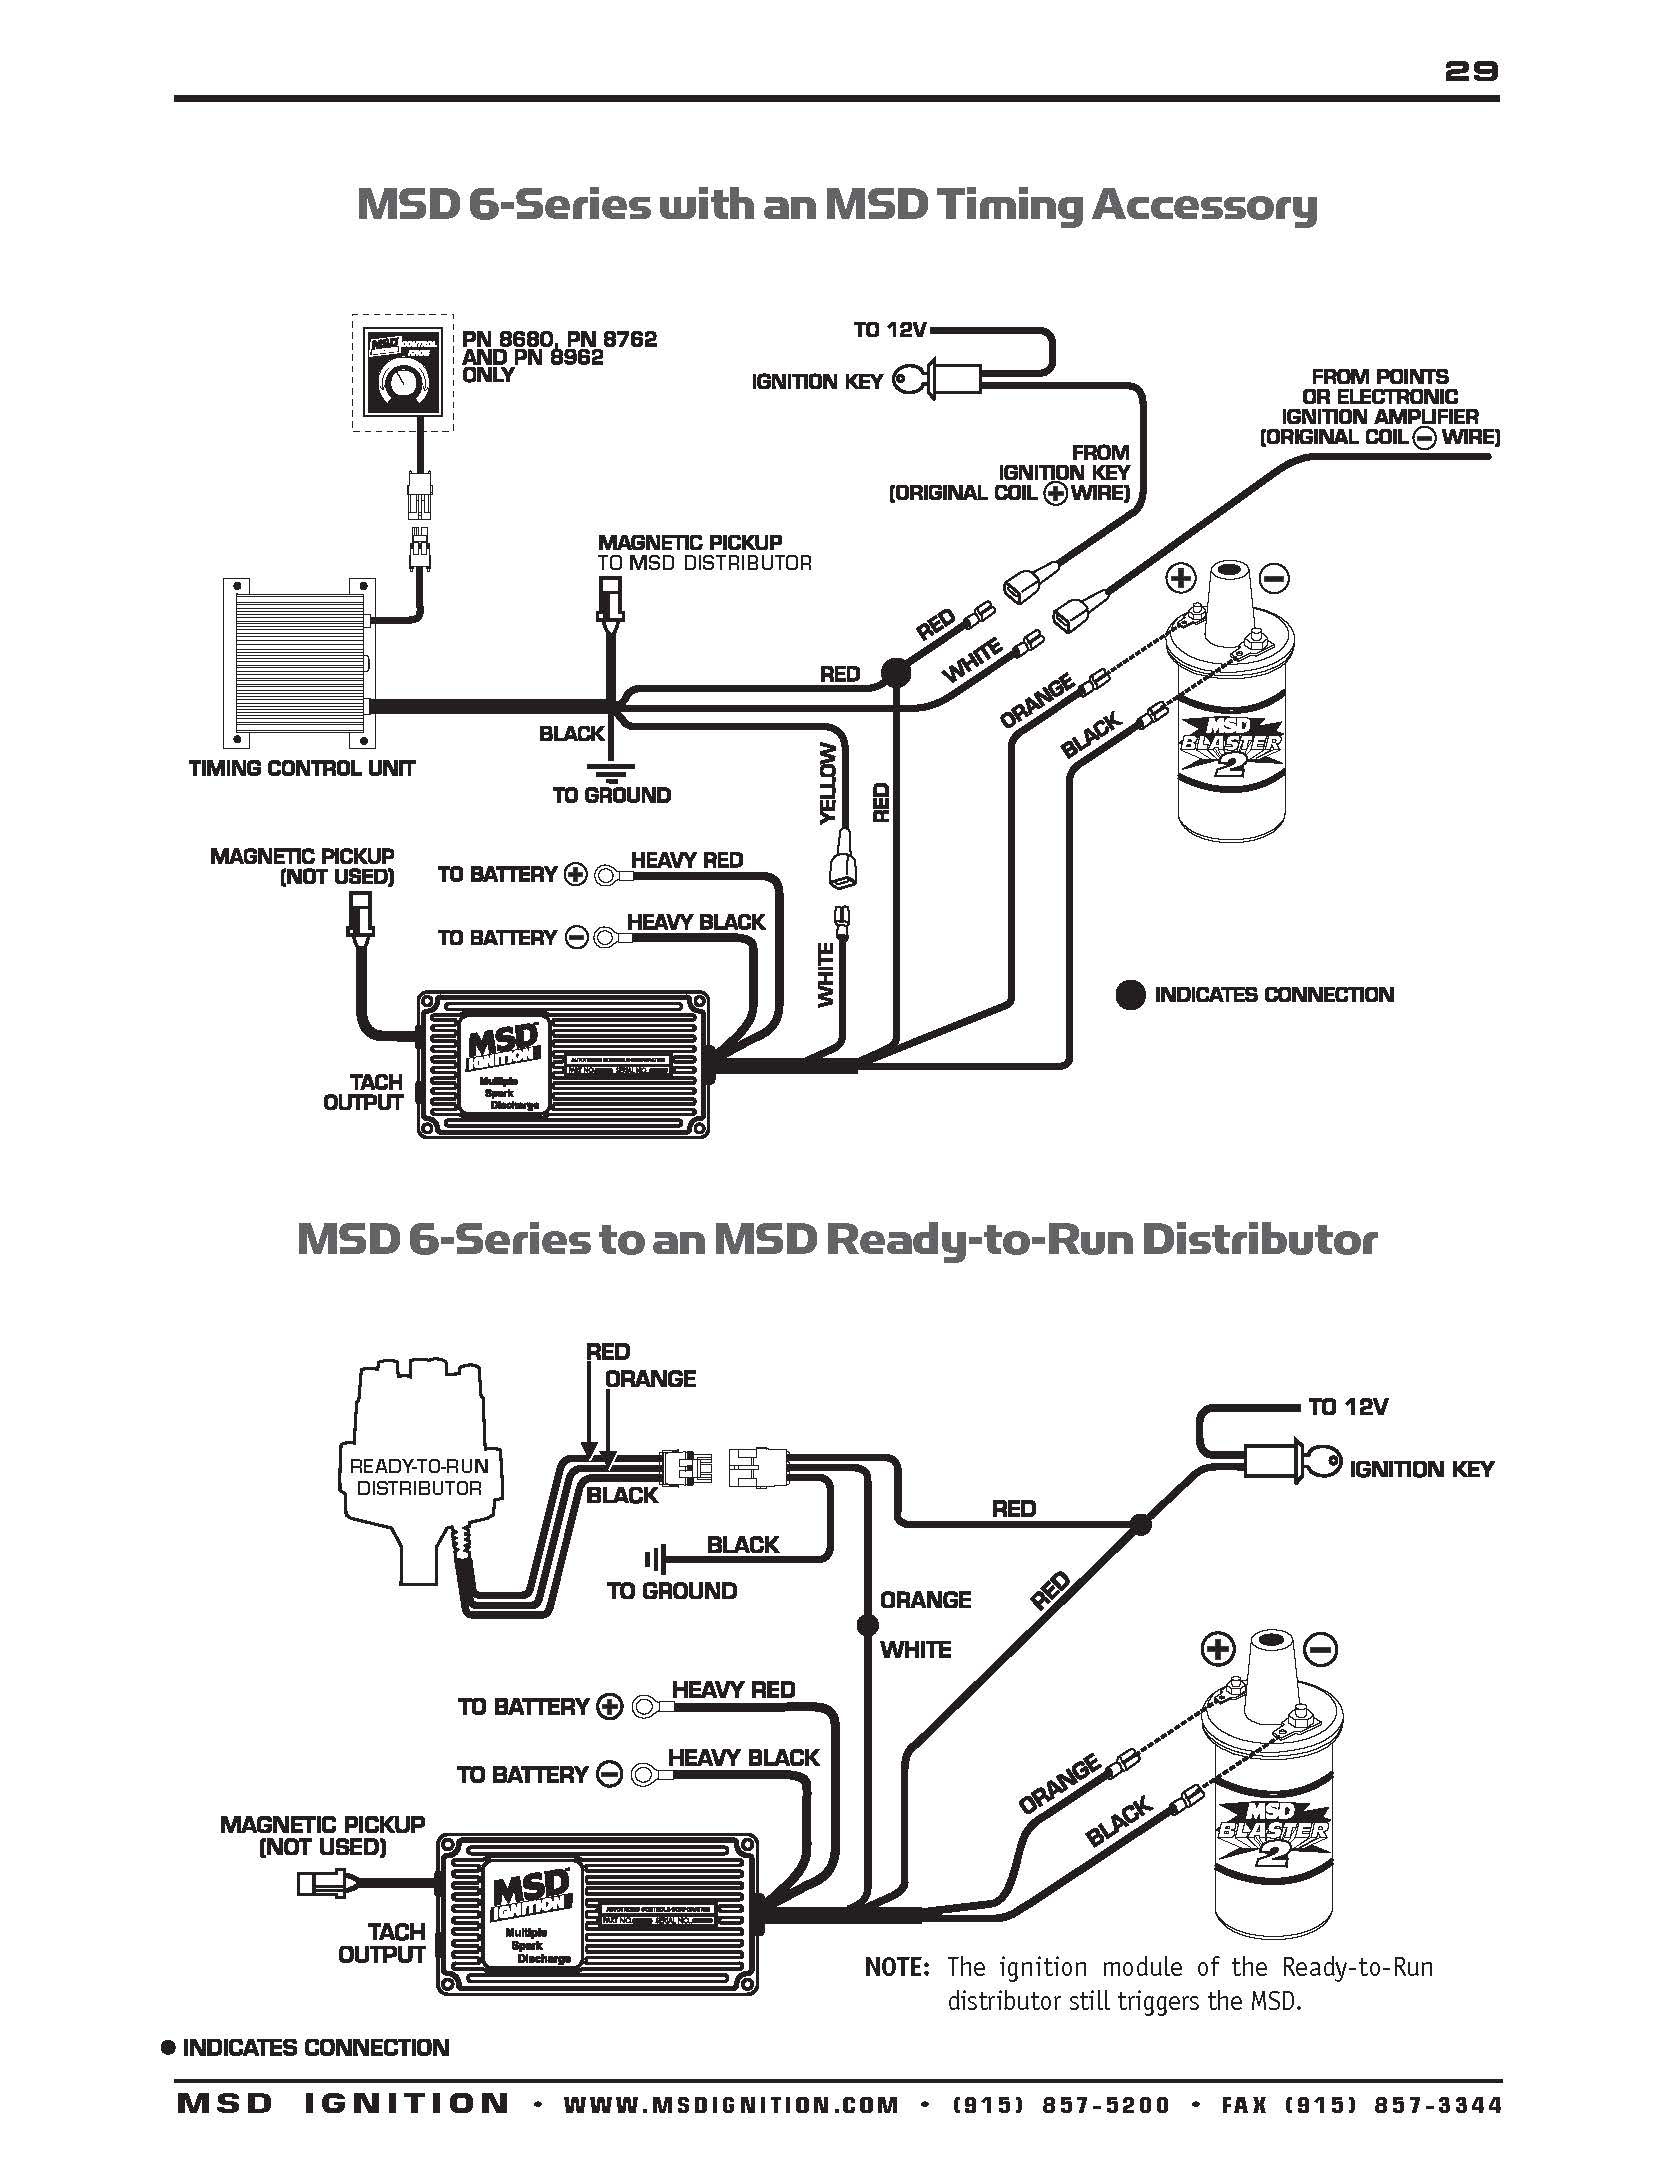 Msd Distributor Wiring - Wiring Diagram Blog - Msd Distributor Wiring Diagram